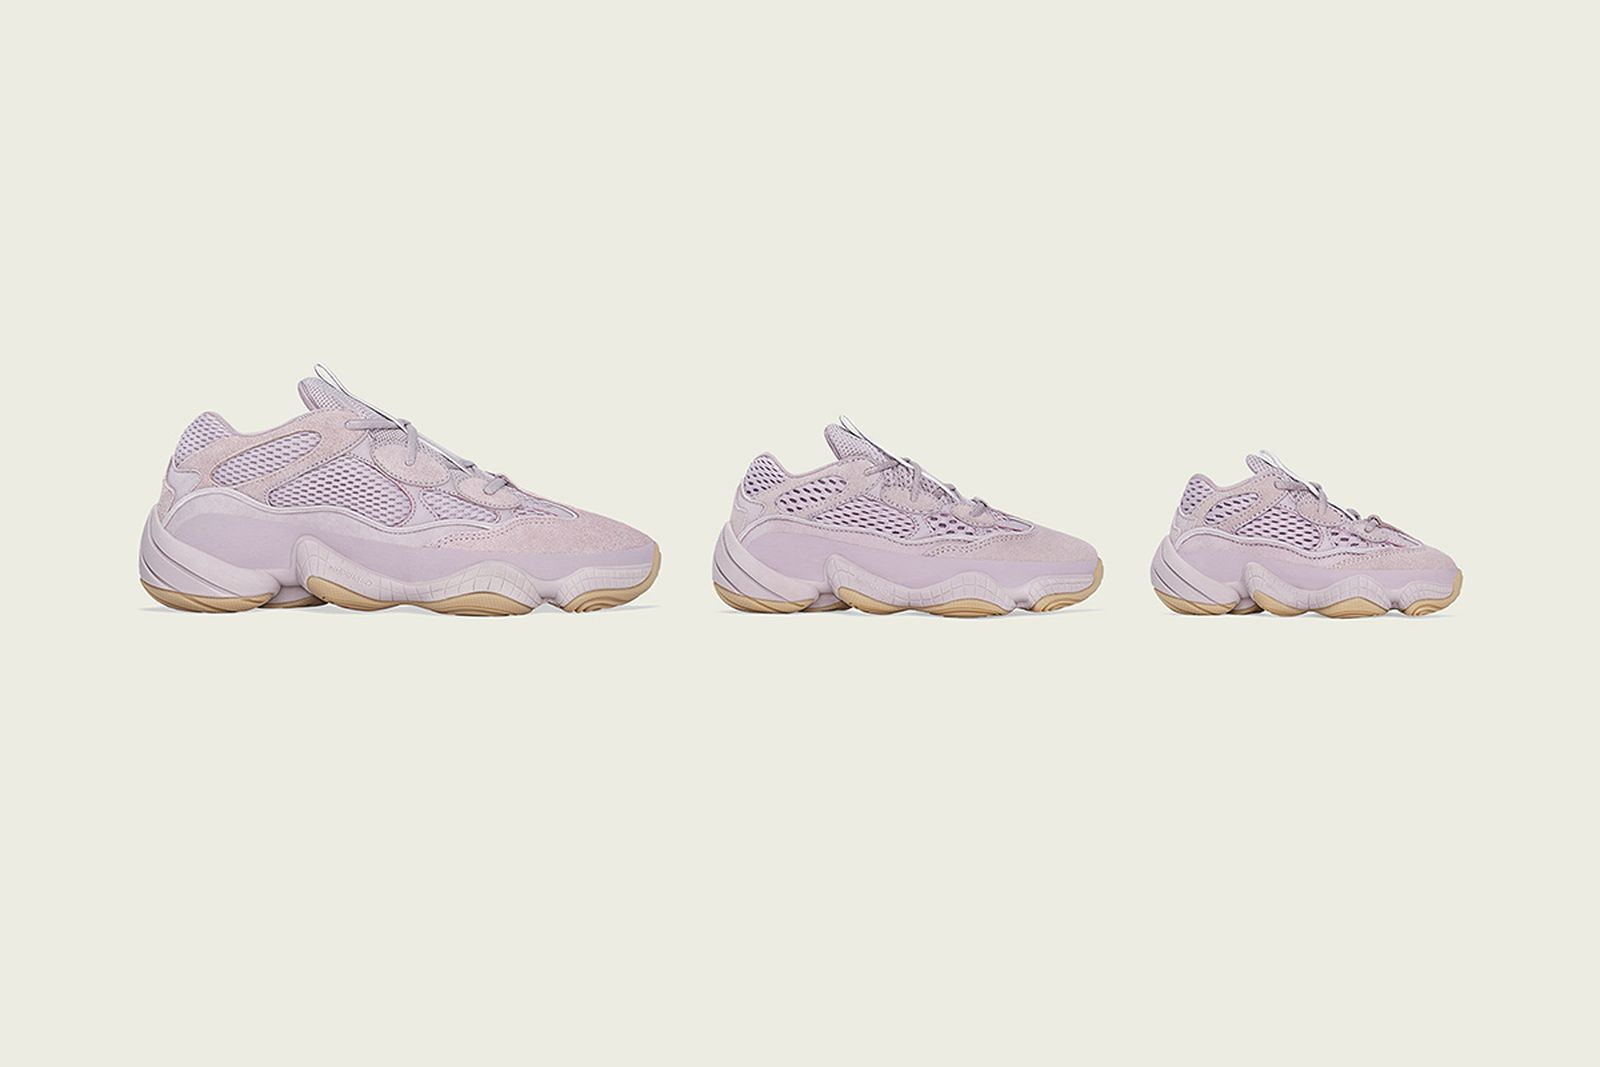 adidas-yeezy-500-soft-vision-release-date-price-official-04